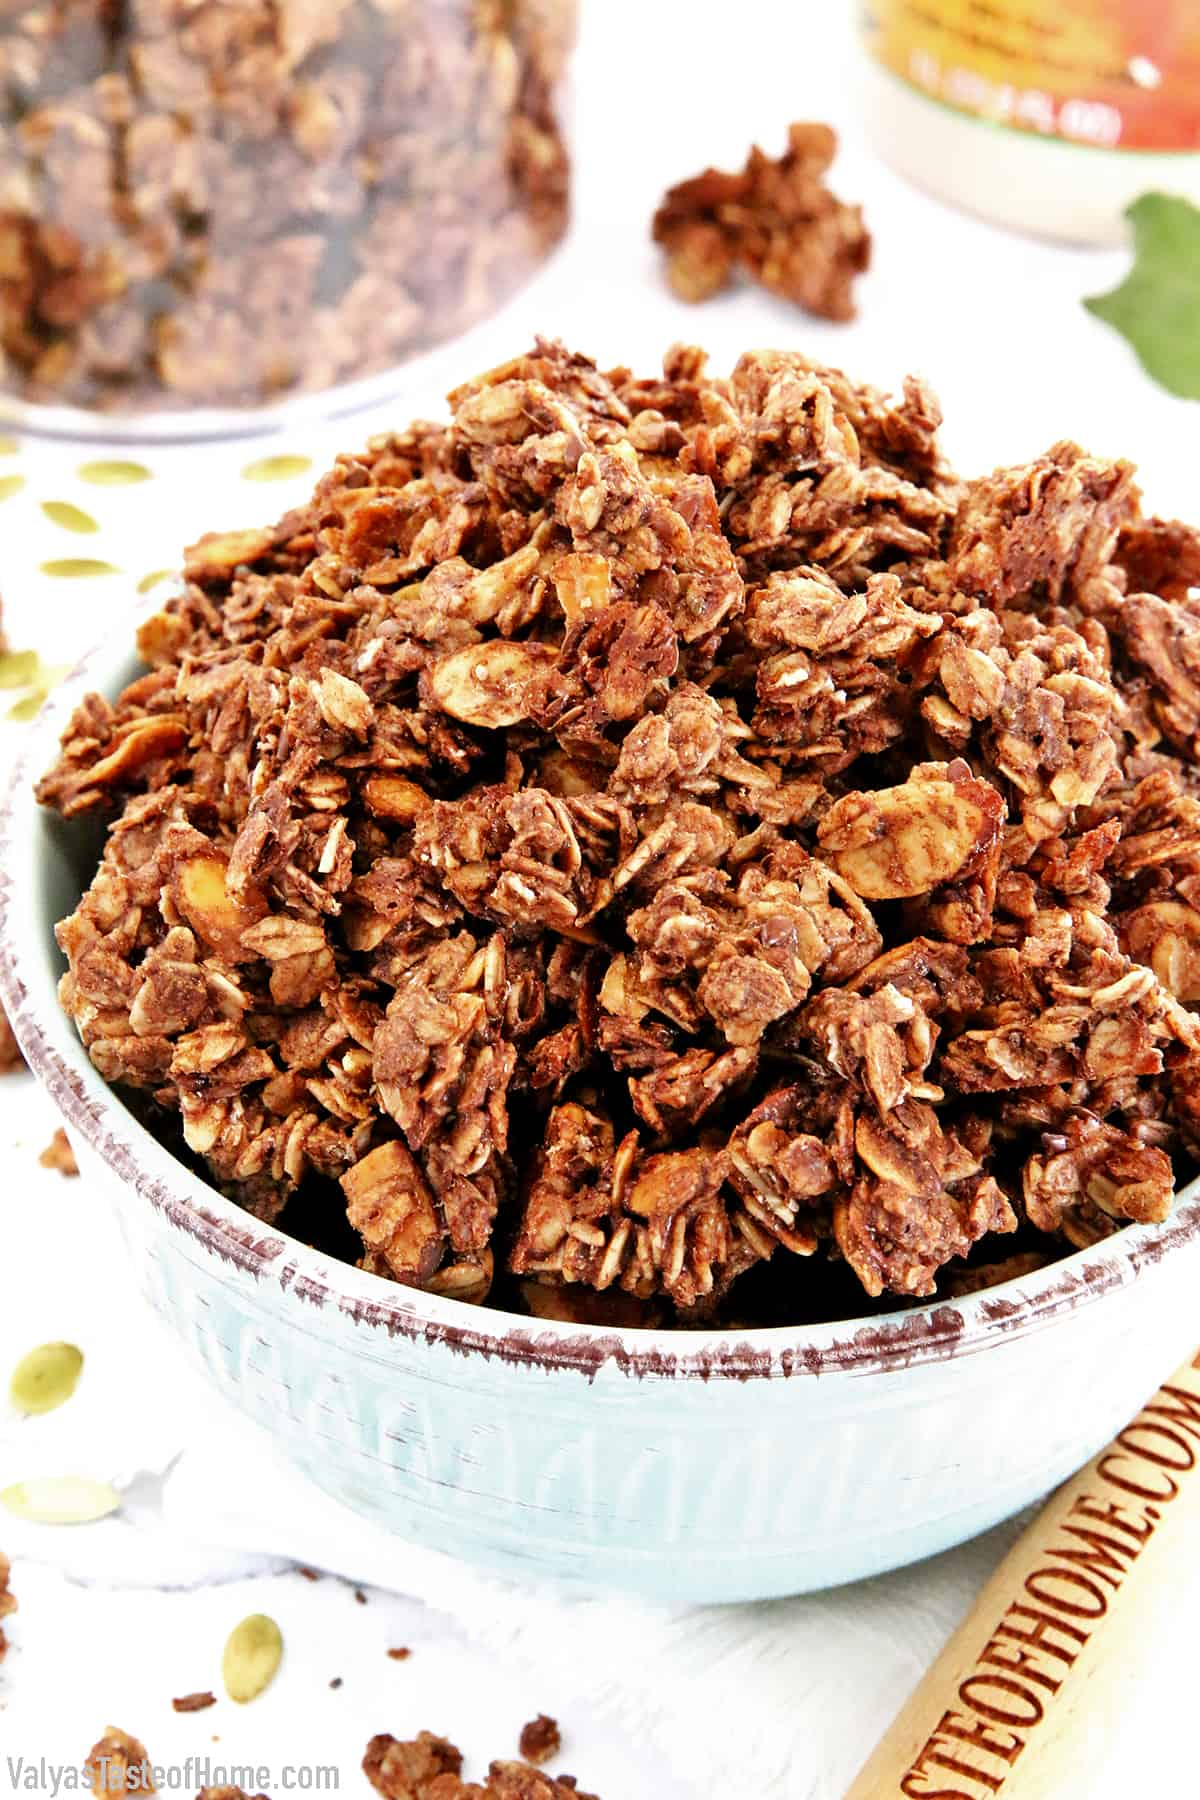 Do you like flavored granola? Are you still buying chocolate granola at the store? Did you know that it is super easy and much healthier to make it yourself at home? And the homemade version is unbeatable. This is The Best Healthy Dark Chocolate Granola Recipe you'll ever try! And also clean, fresh, and healthy.